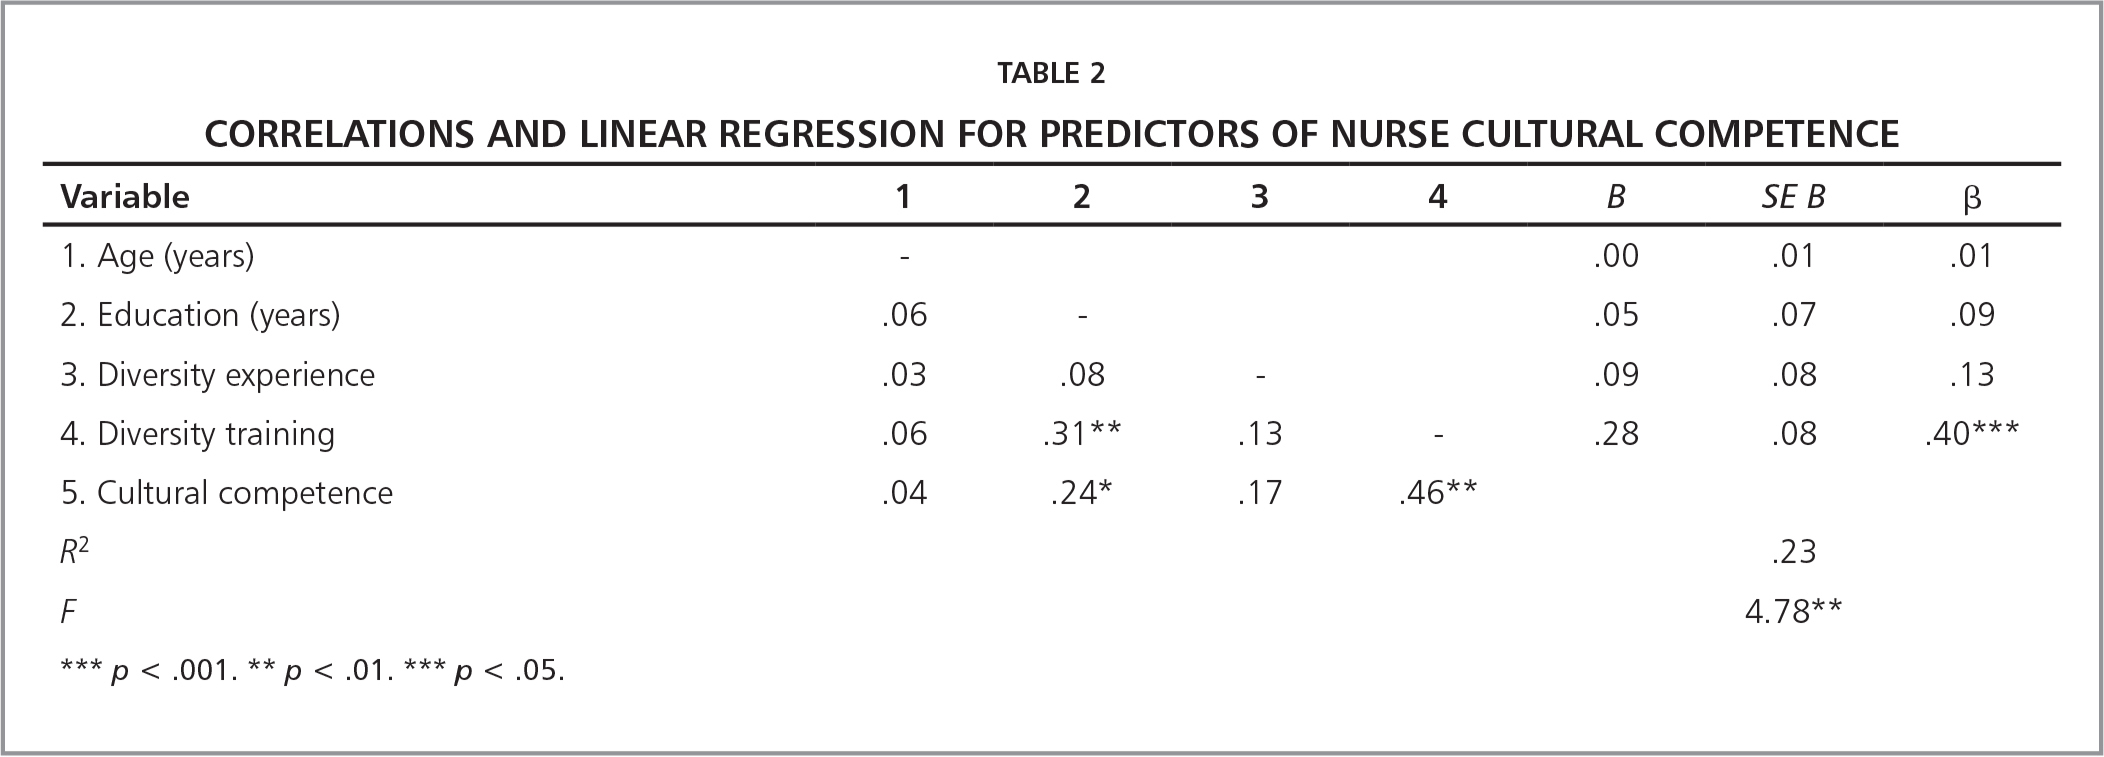 Correlations and Linear Regression for Predictors of Nurse Cultural Competence